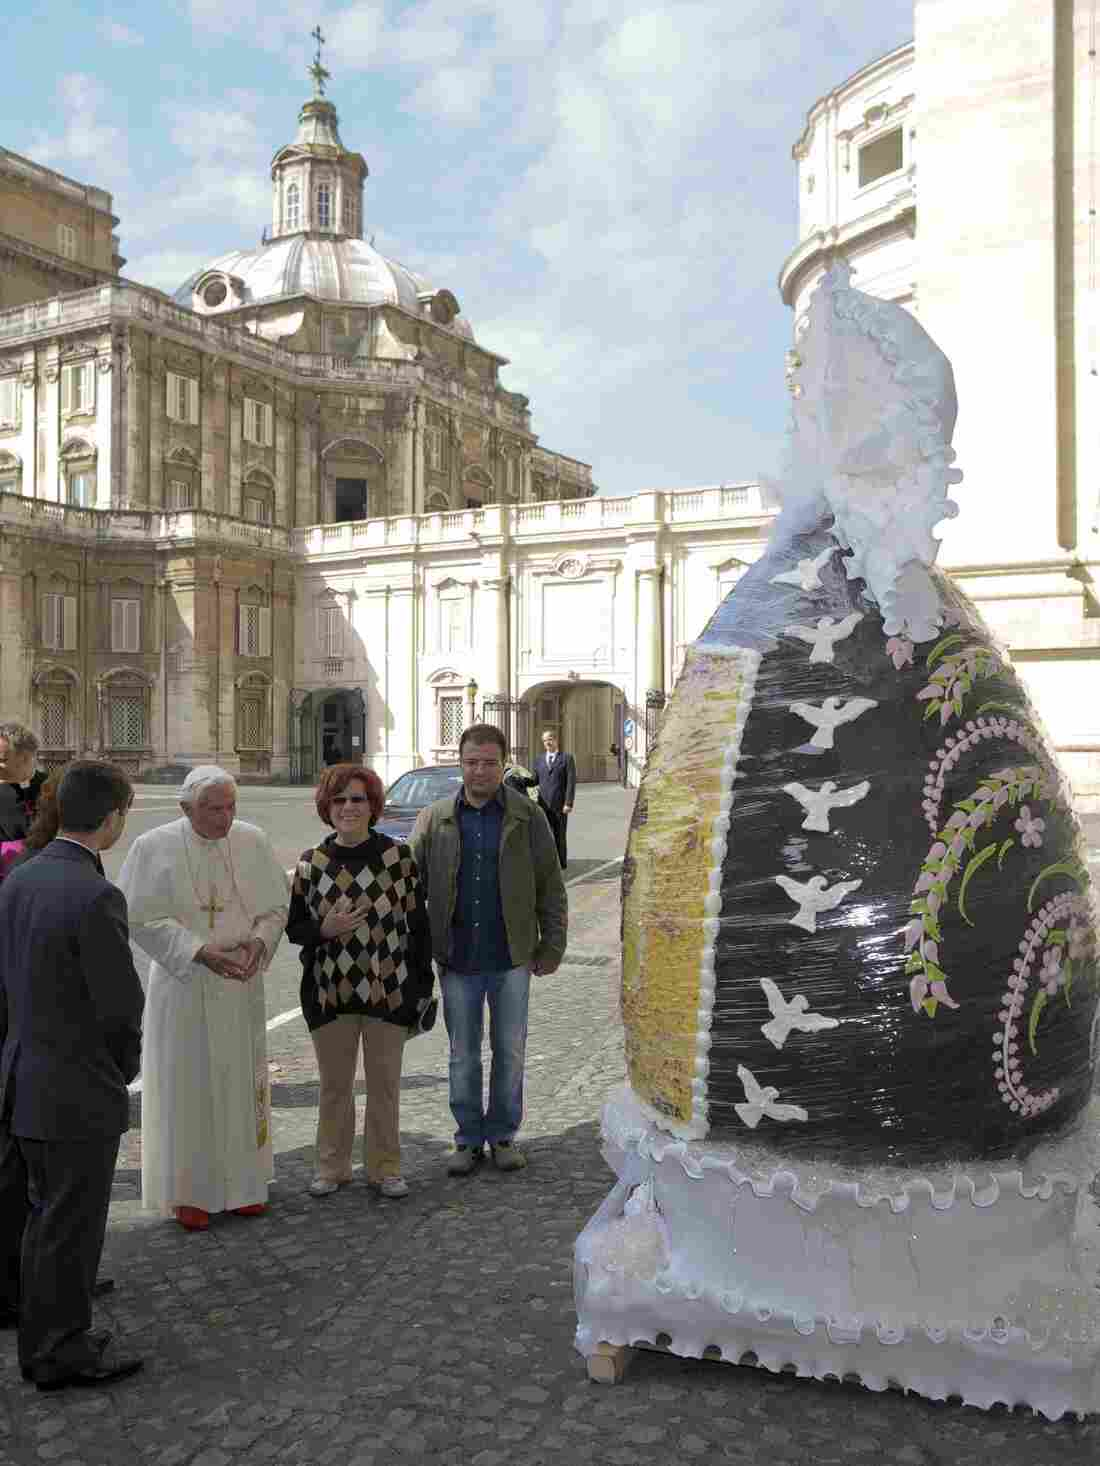 In 2012, an Italian chocolatier presented Benedict XVI, now pope emeritus, with a 6.5-foot-tall chocolate Easter egg weighing some 550 pounds.